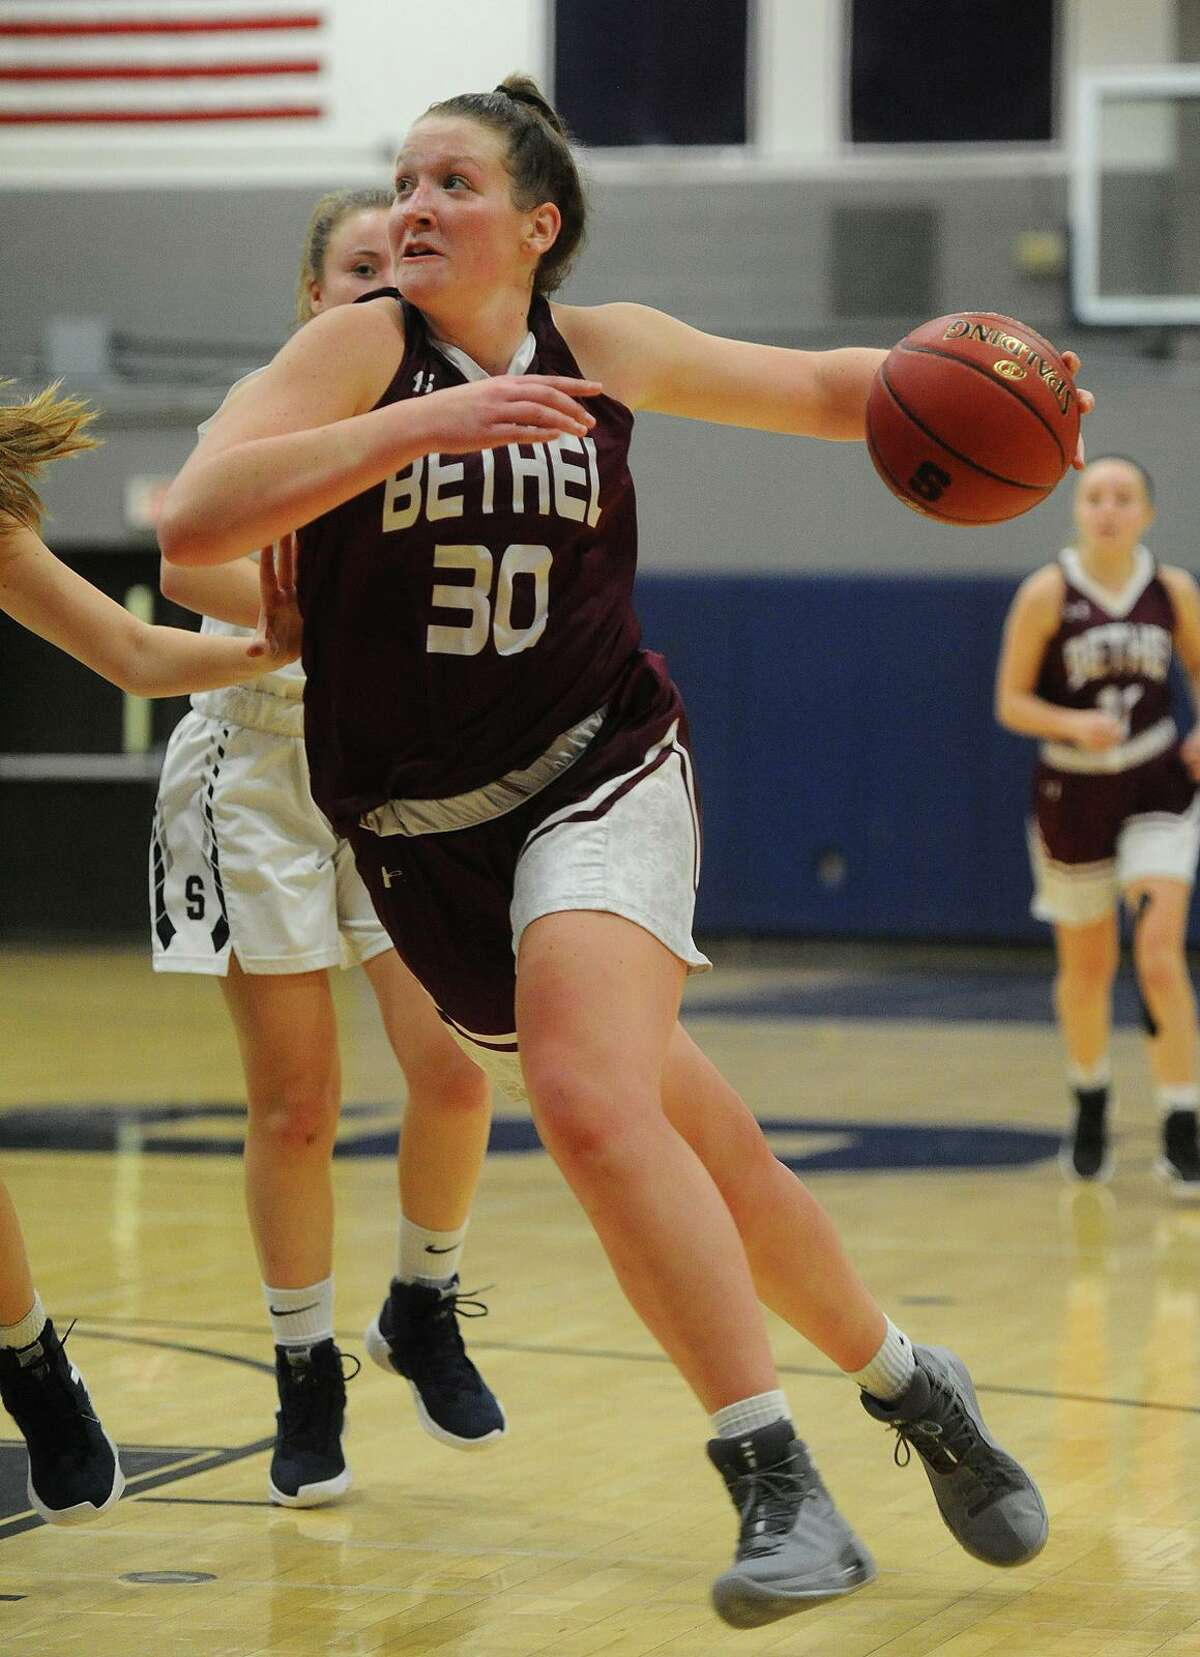 Bethel's Maranda Nyborg drives to the basket in the first half of their girls basketball game at Staples High School in Westport, Conn. on Monday, December 10, 2018.